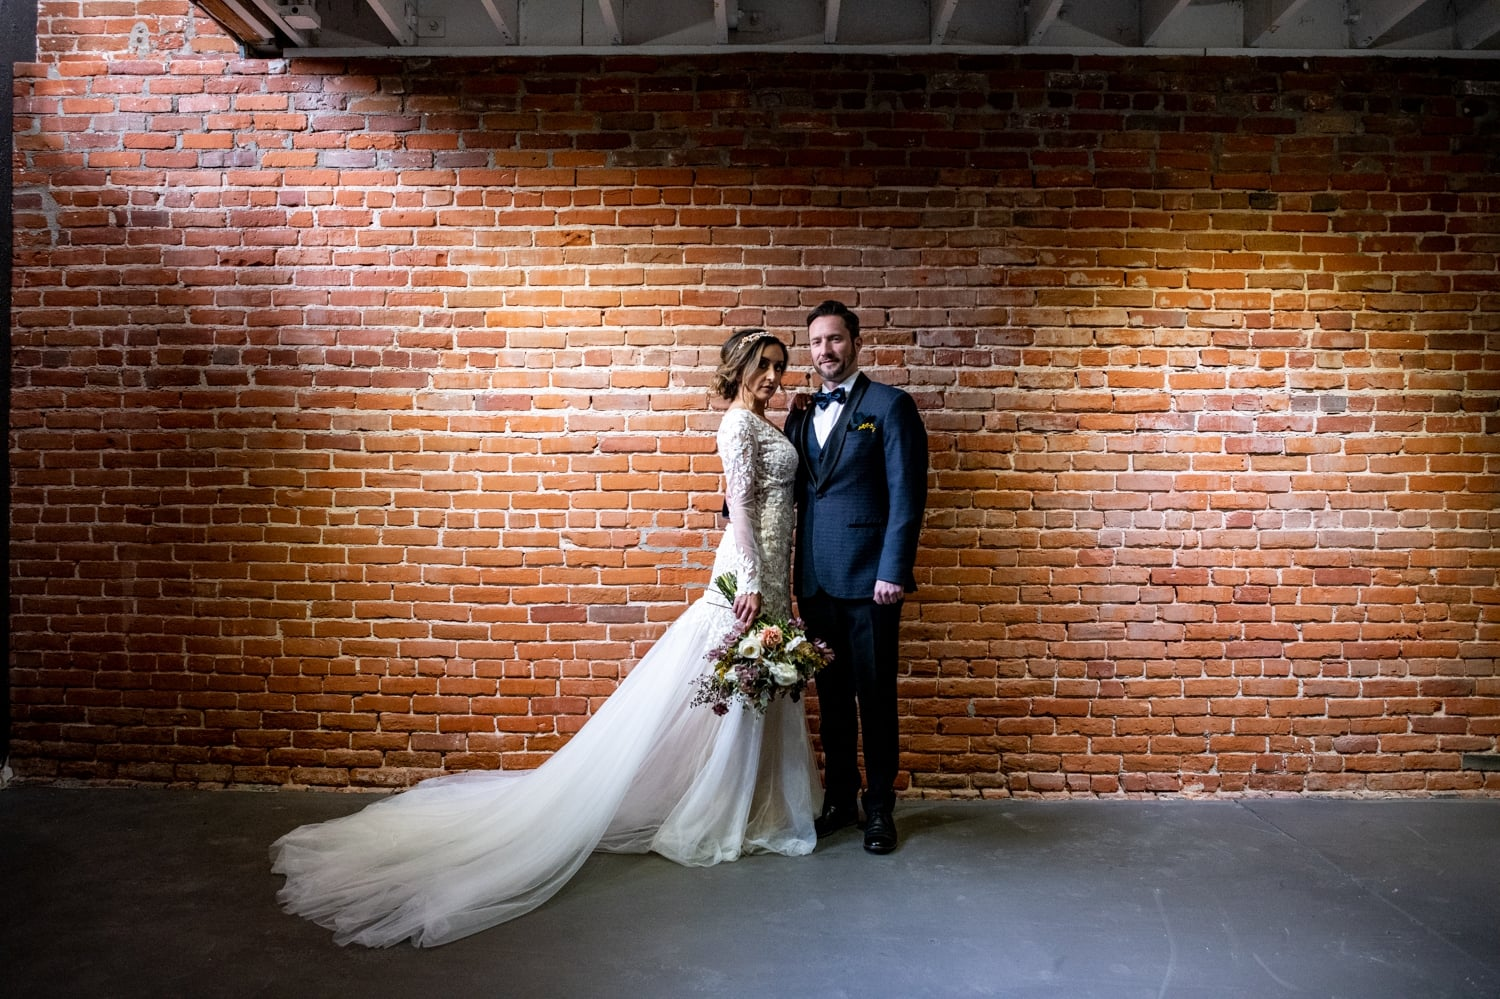 Bride and groom against a brick wall in the basement of the Pannikin Building.